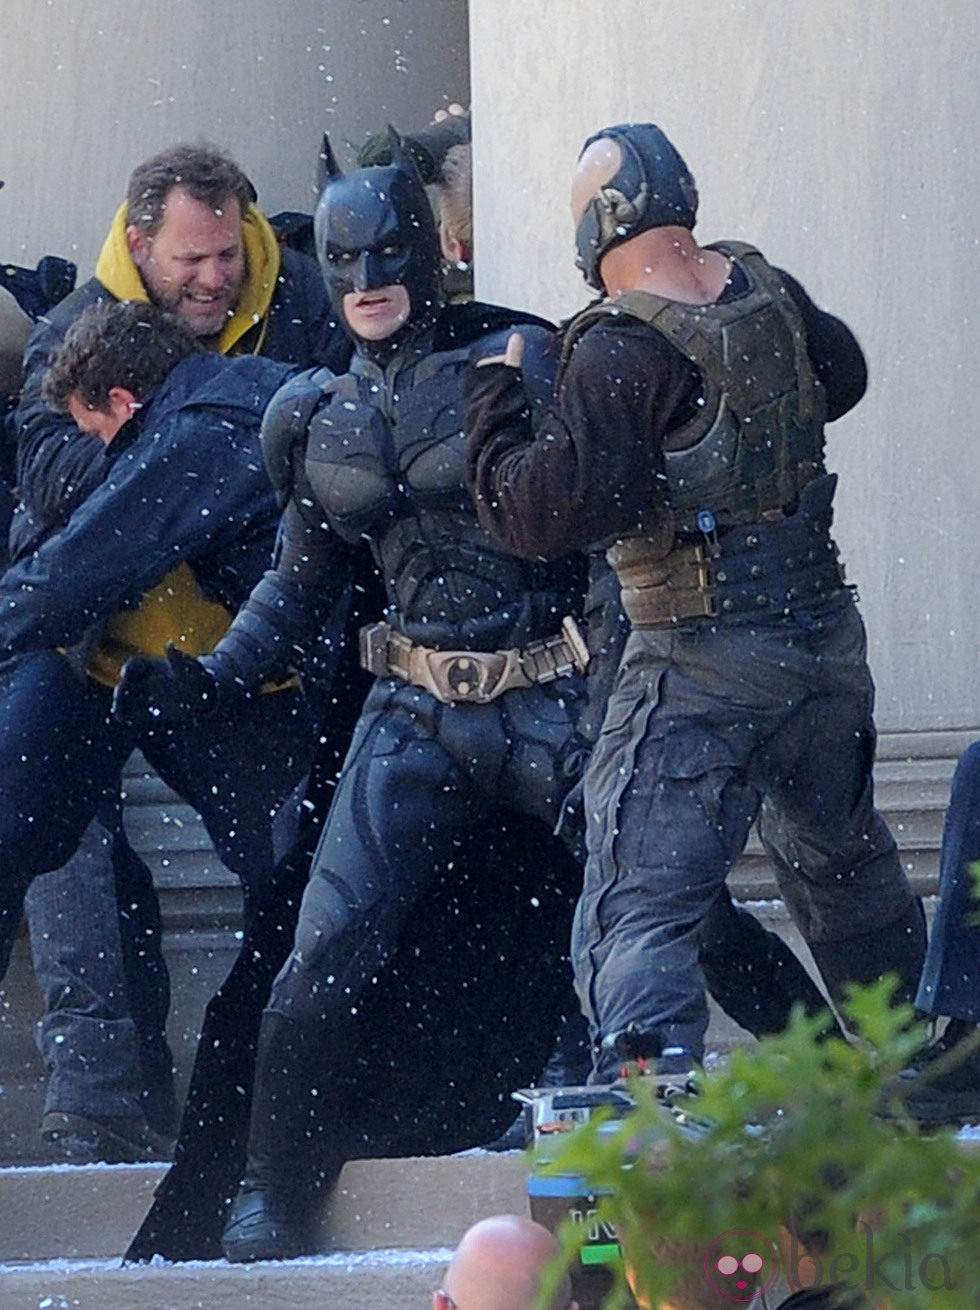 Christian Bale y Tom Hardy en el rodaje de 'The dark night rises' en Pittsburgh